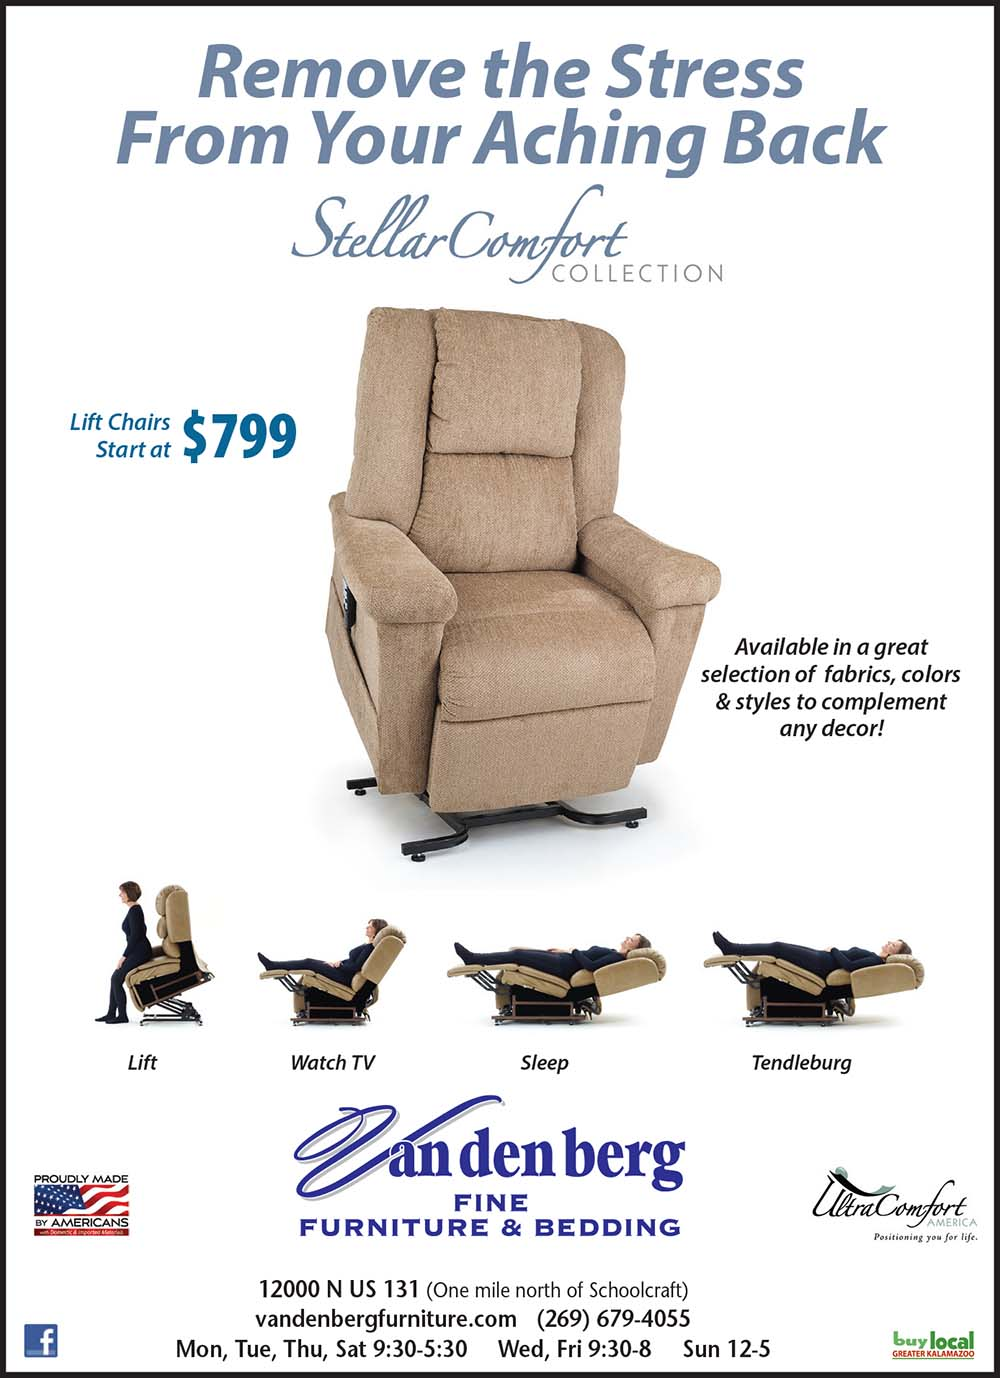 Lift Chairs Starting at $799